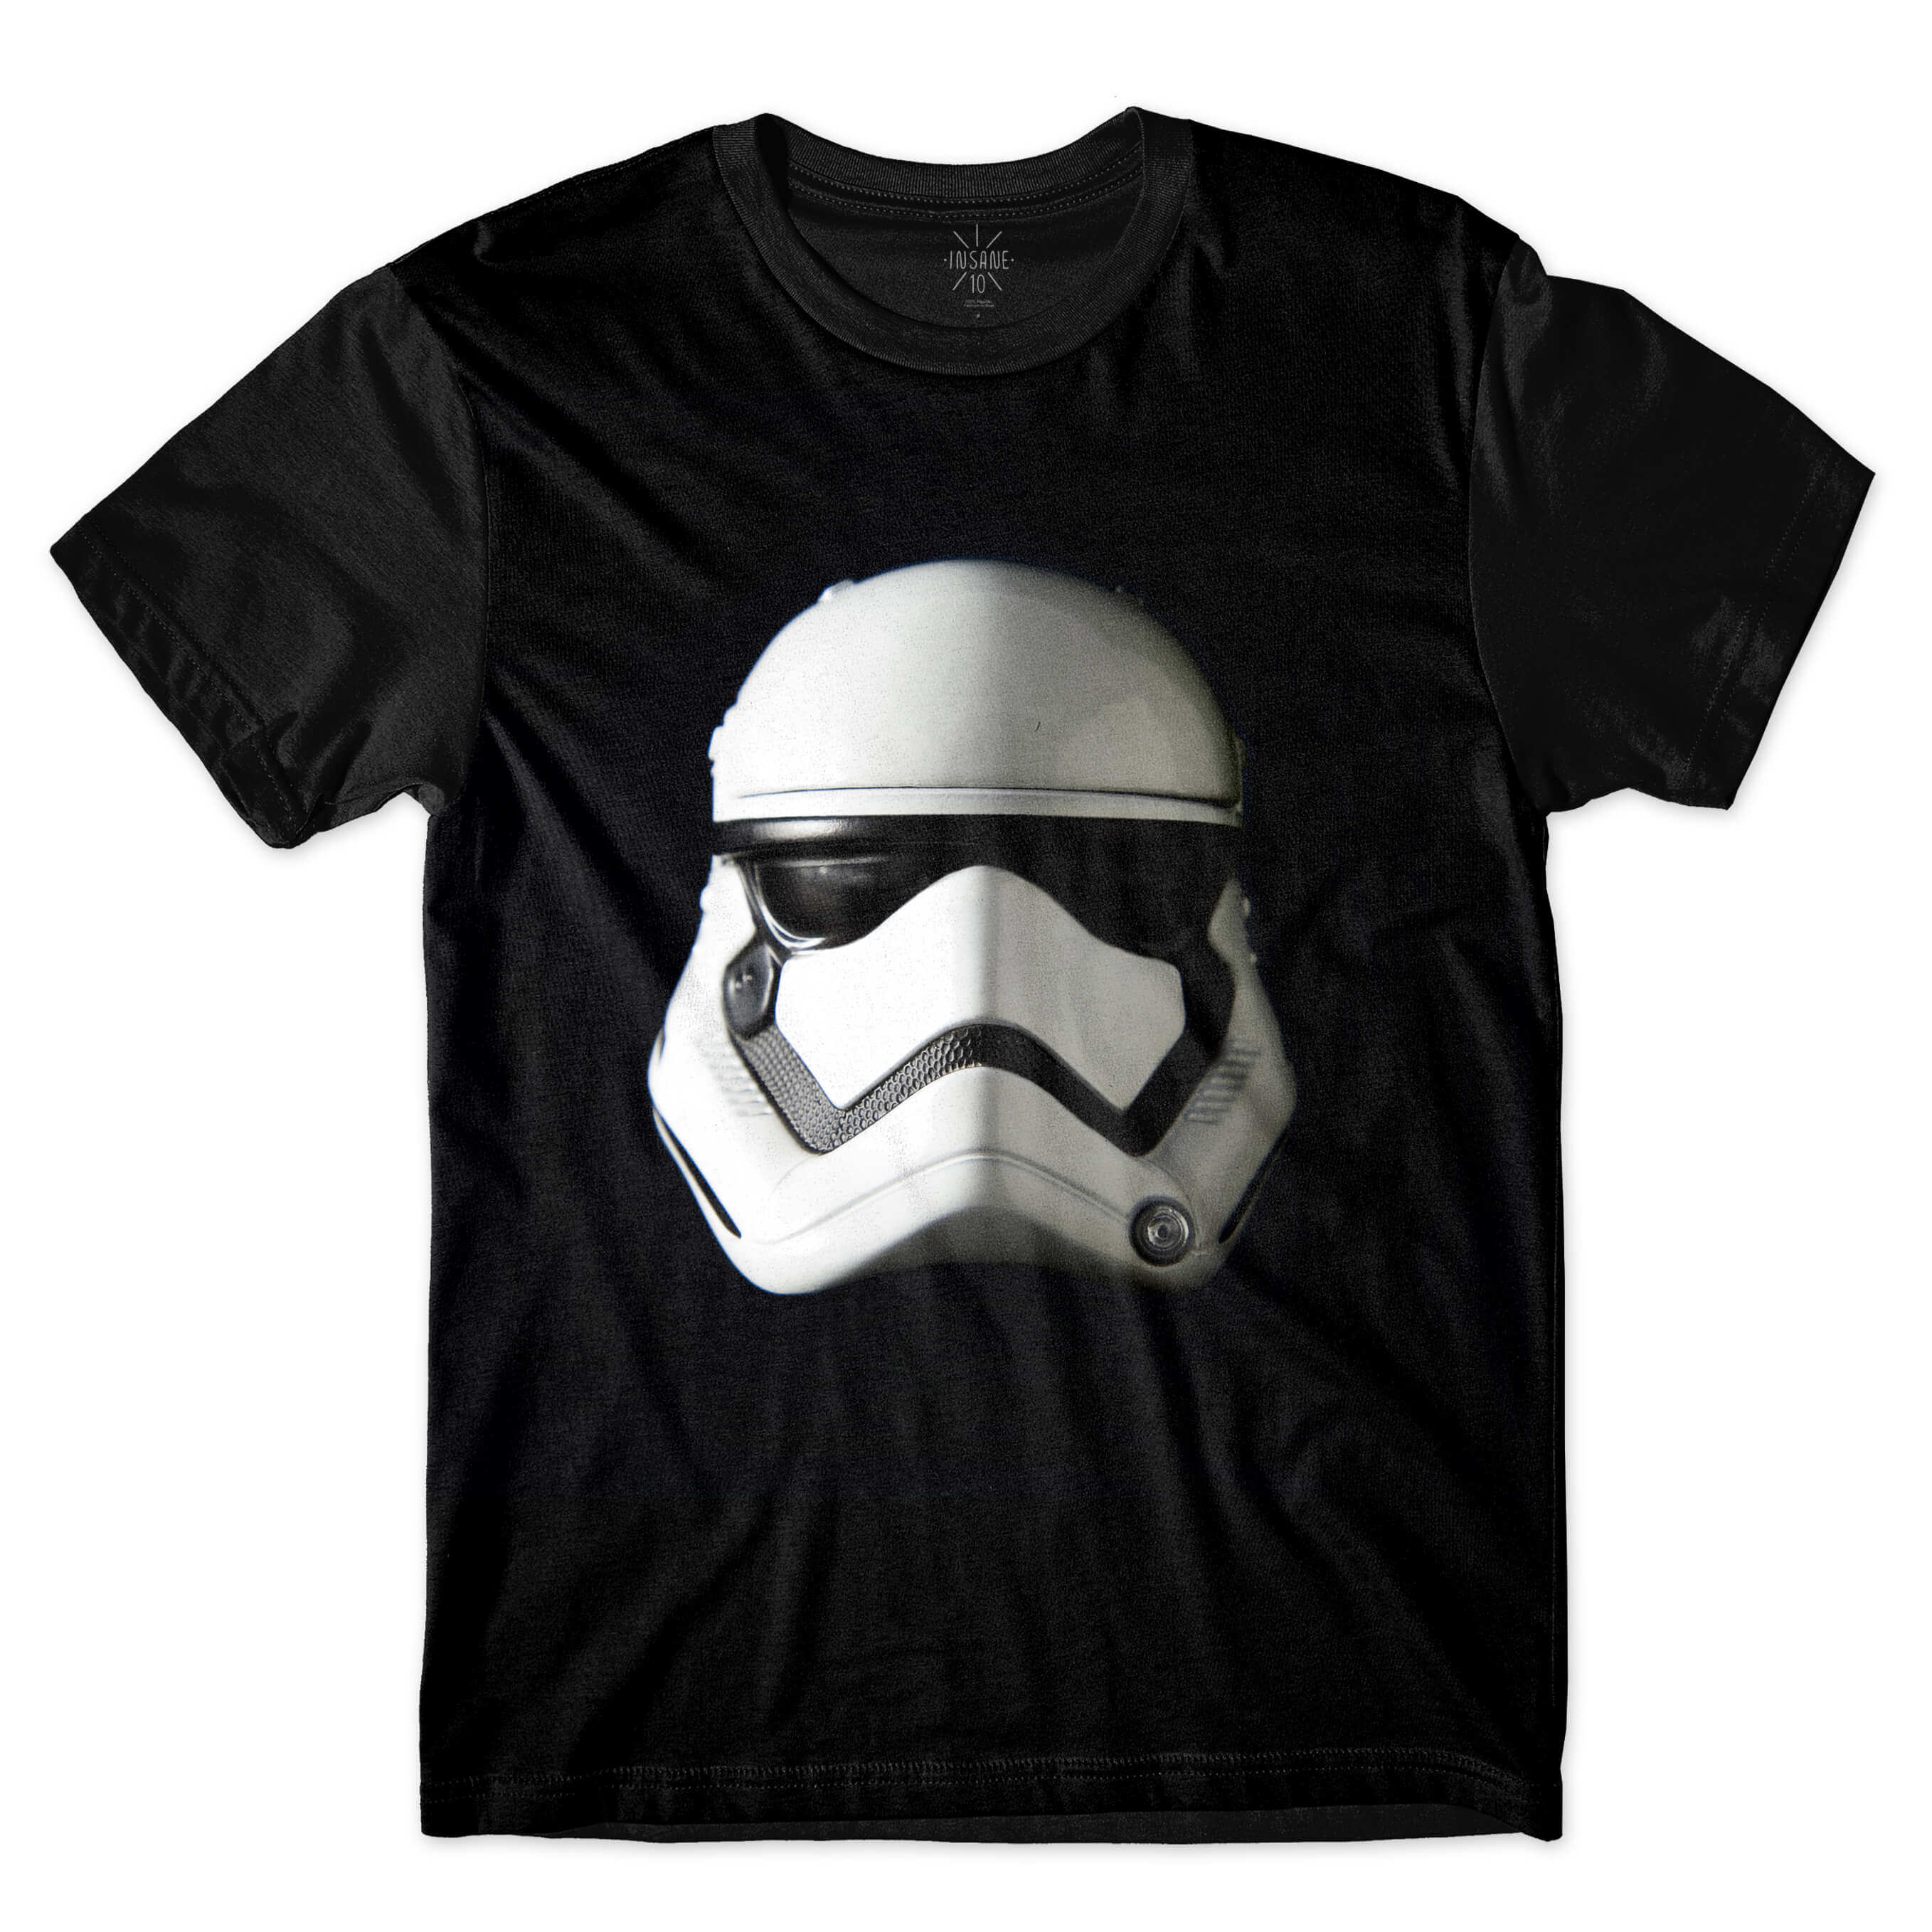 Camiseta BSC Star Wars Máscara Stormtrooper Sublimada Preto